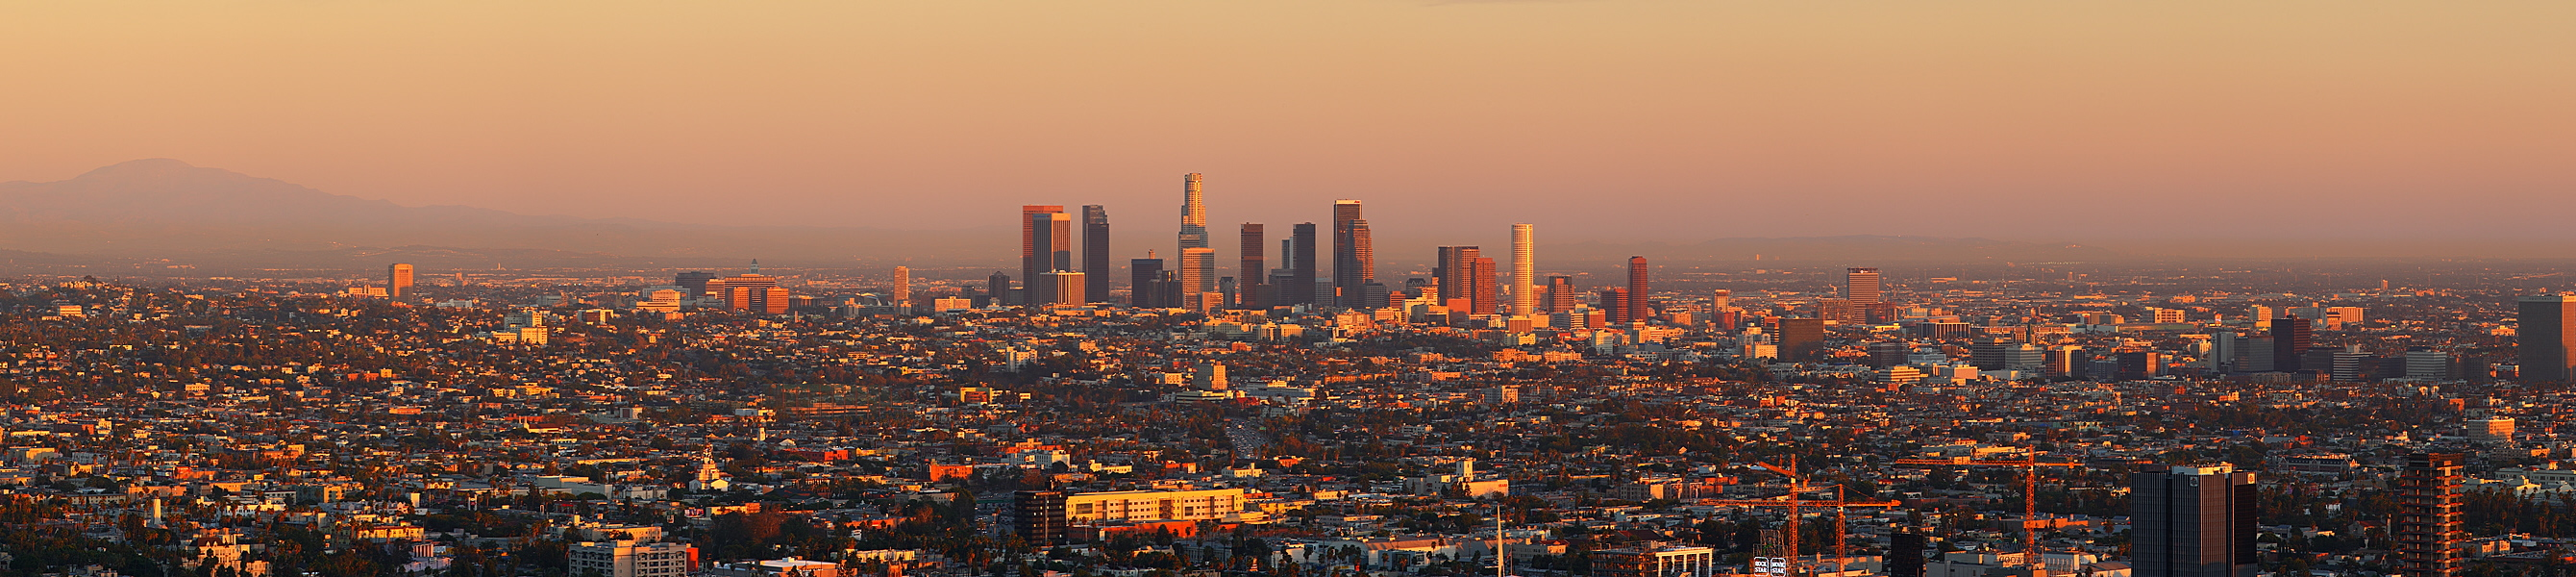 Los_Angeles_Panorama